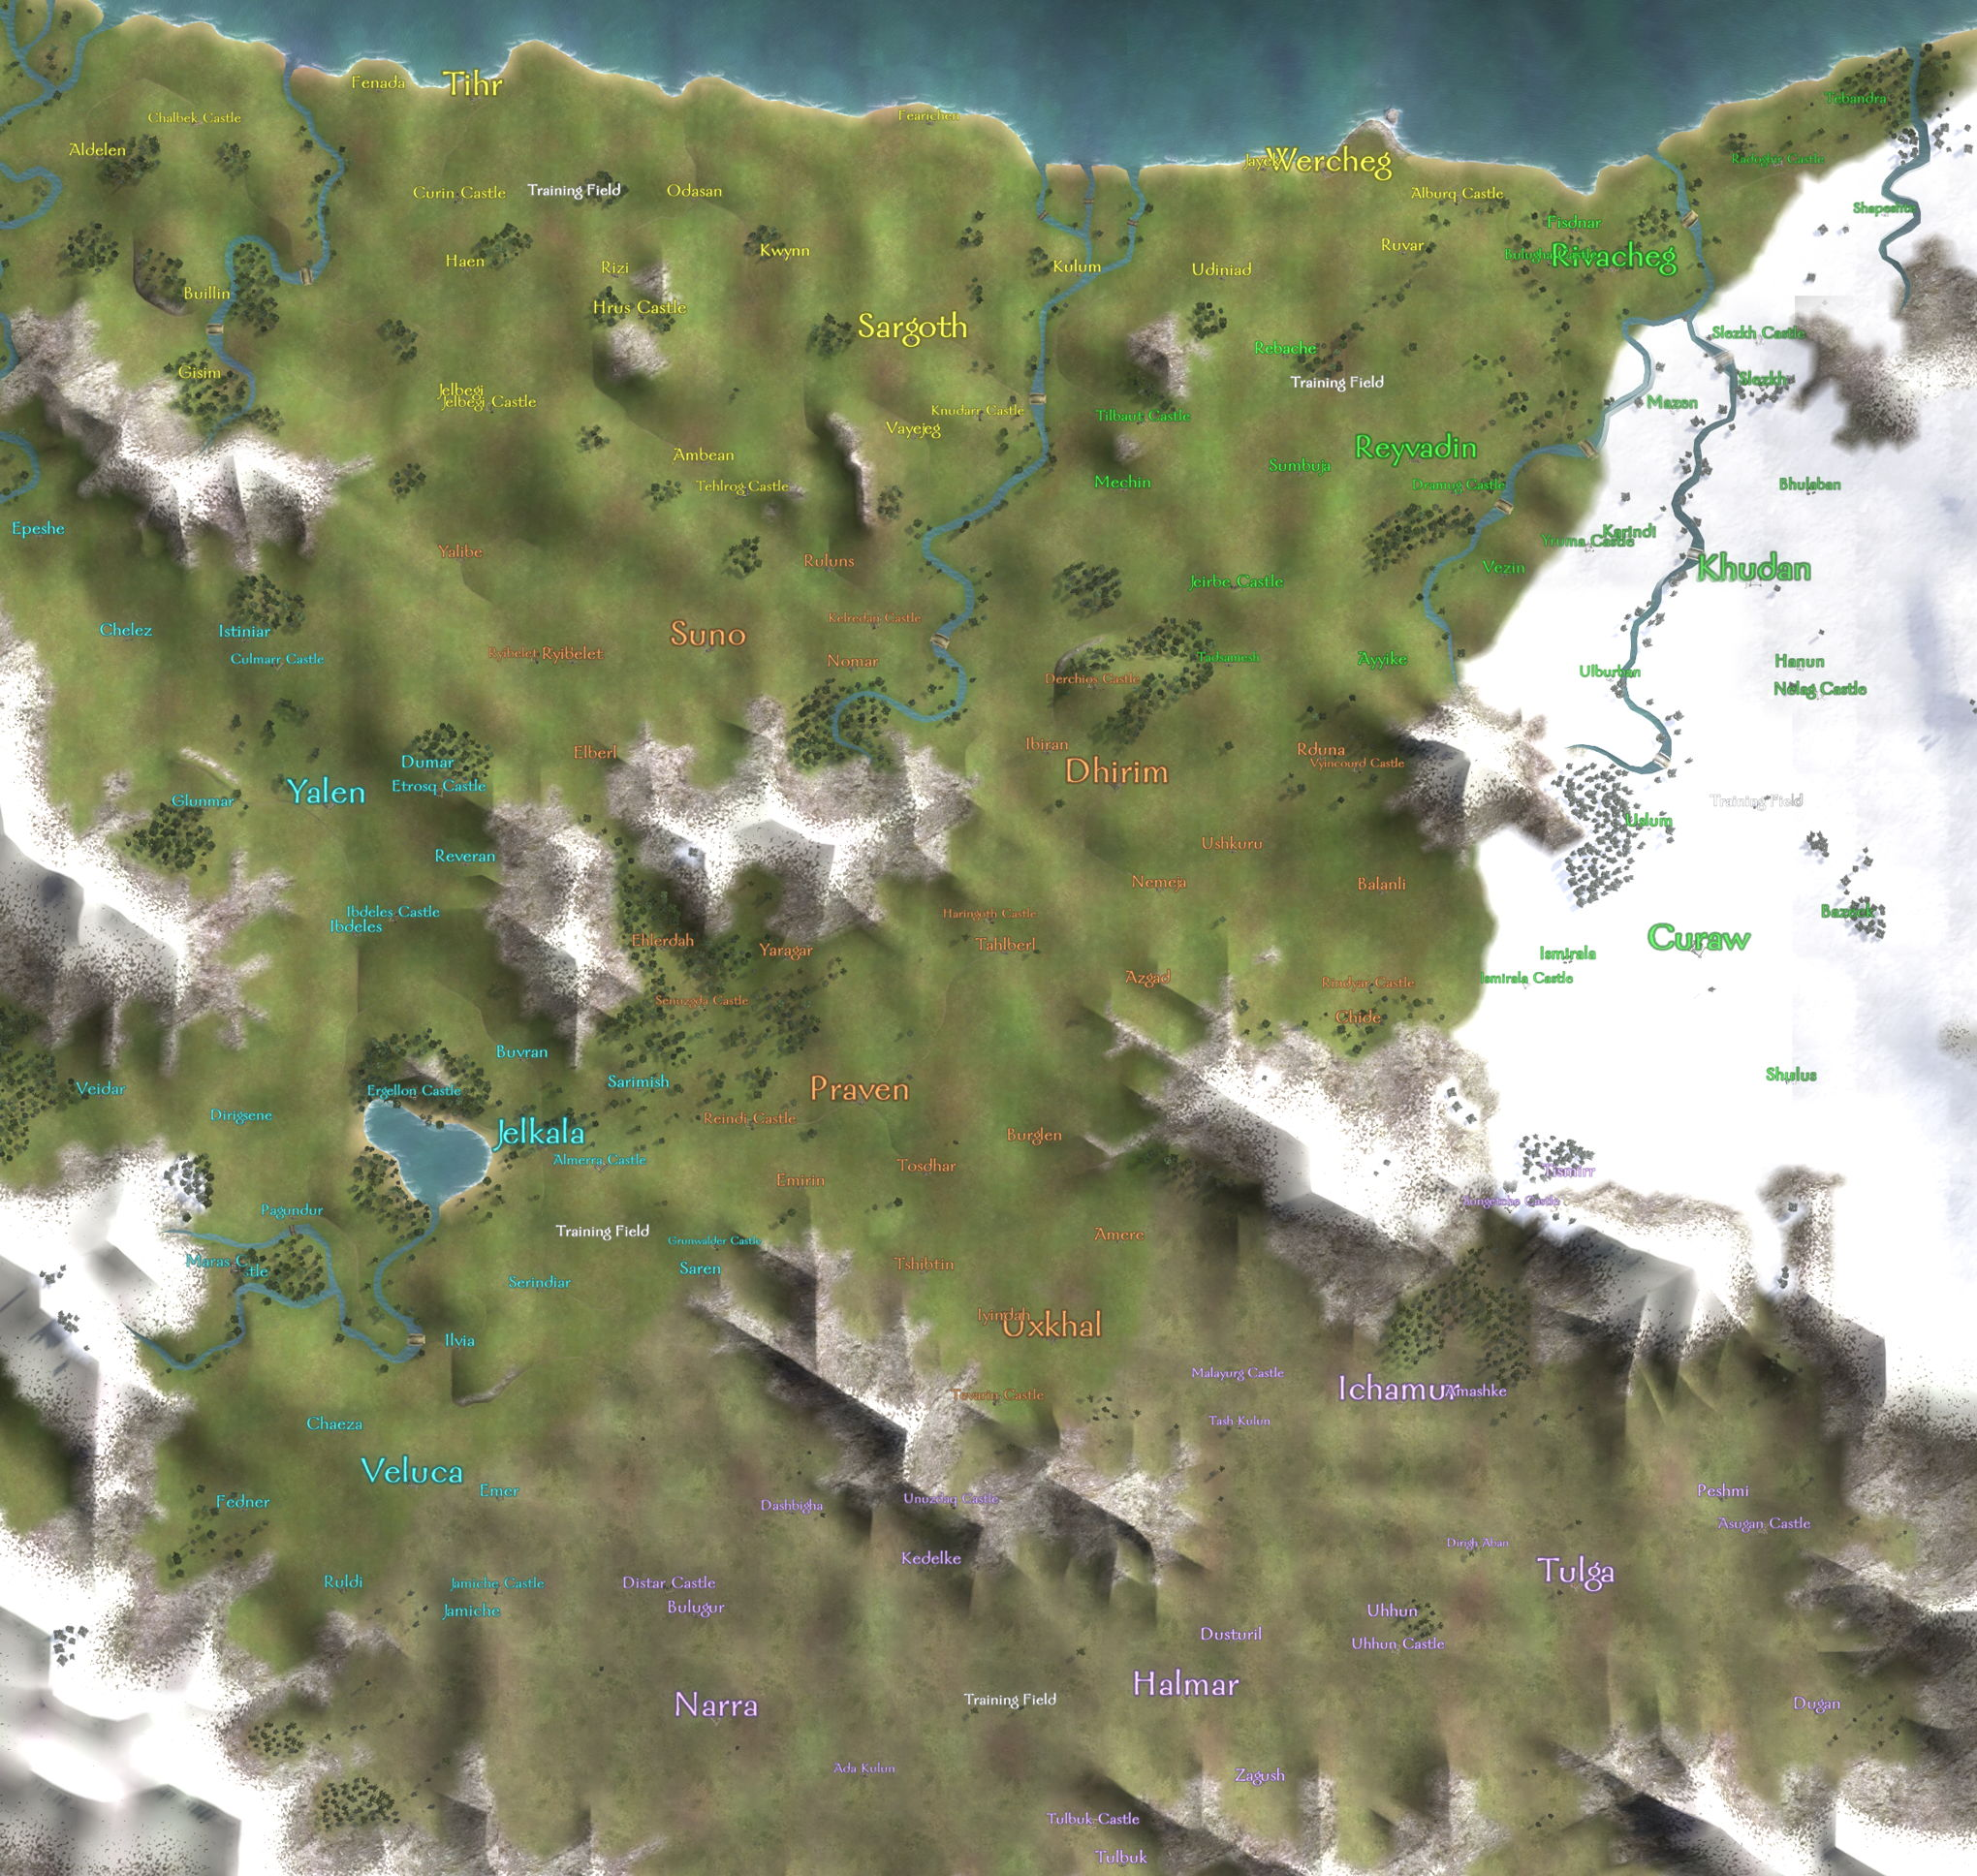 mount blade maps strategywiki the video game